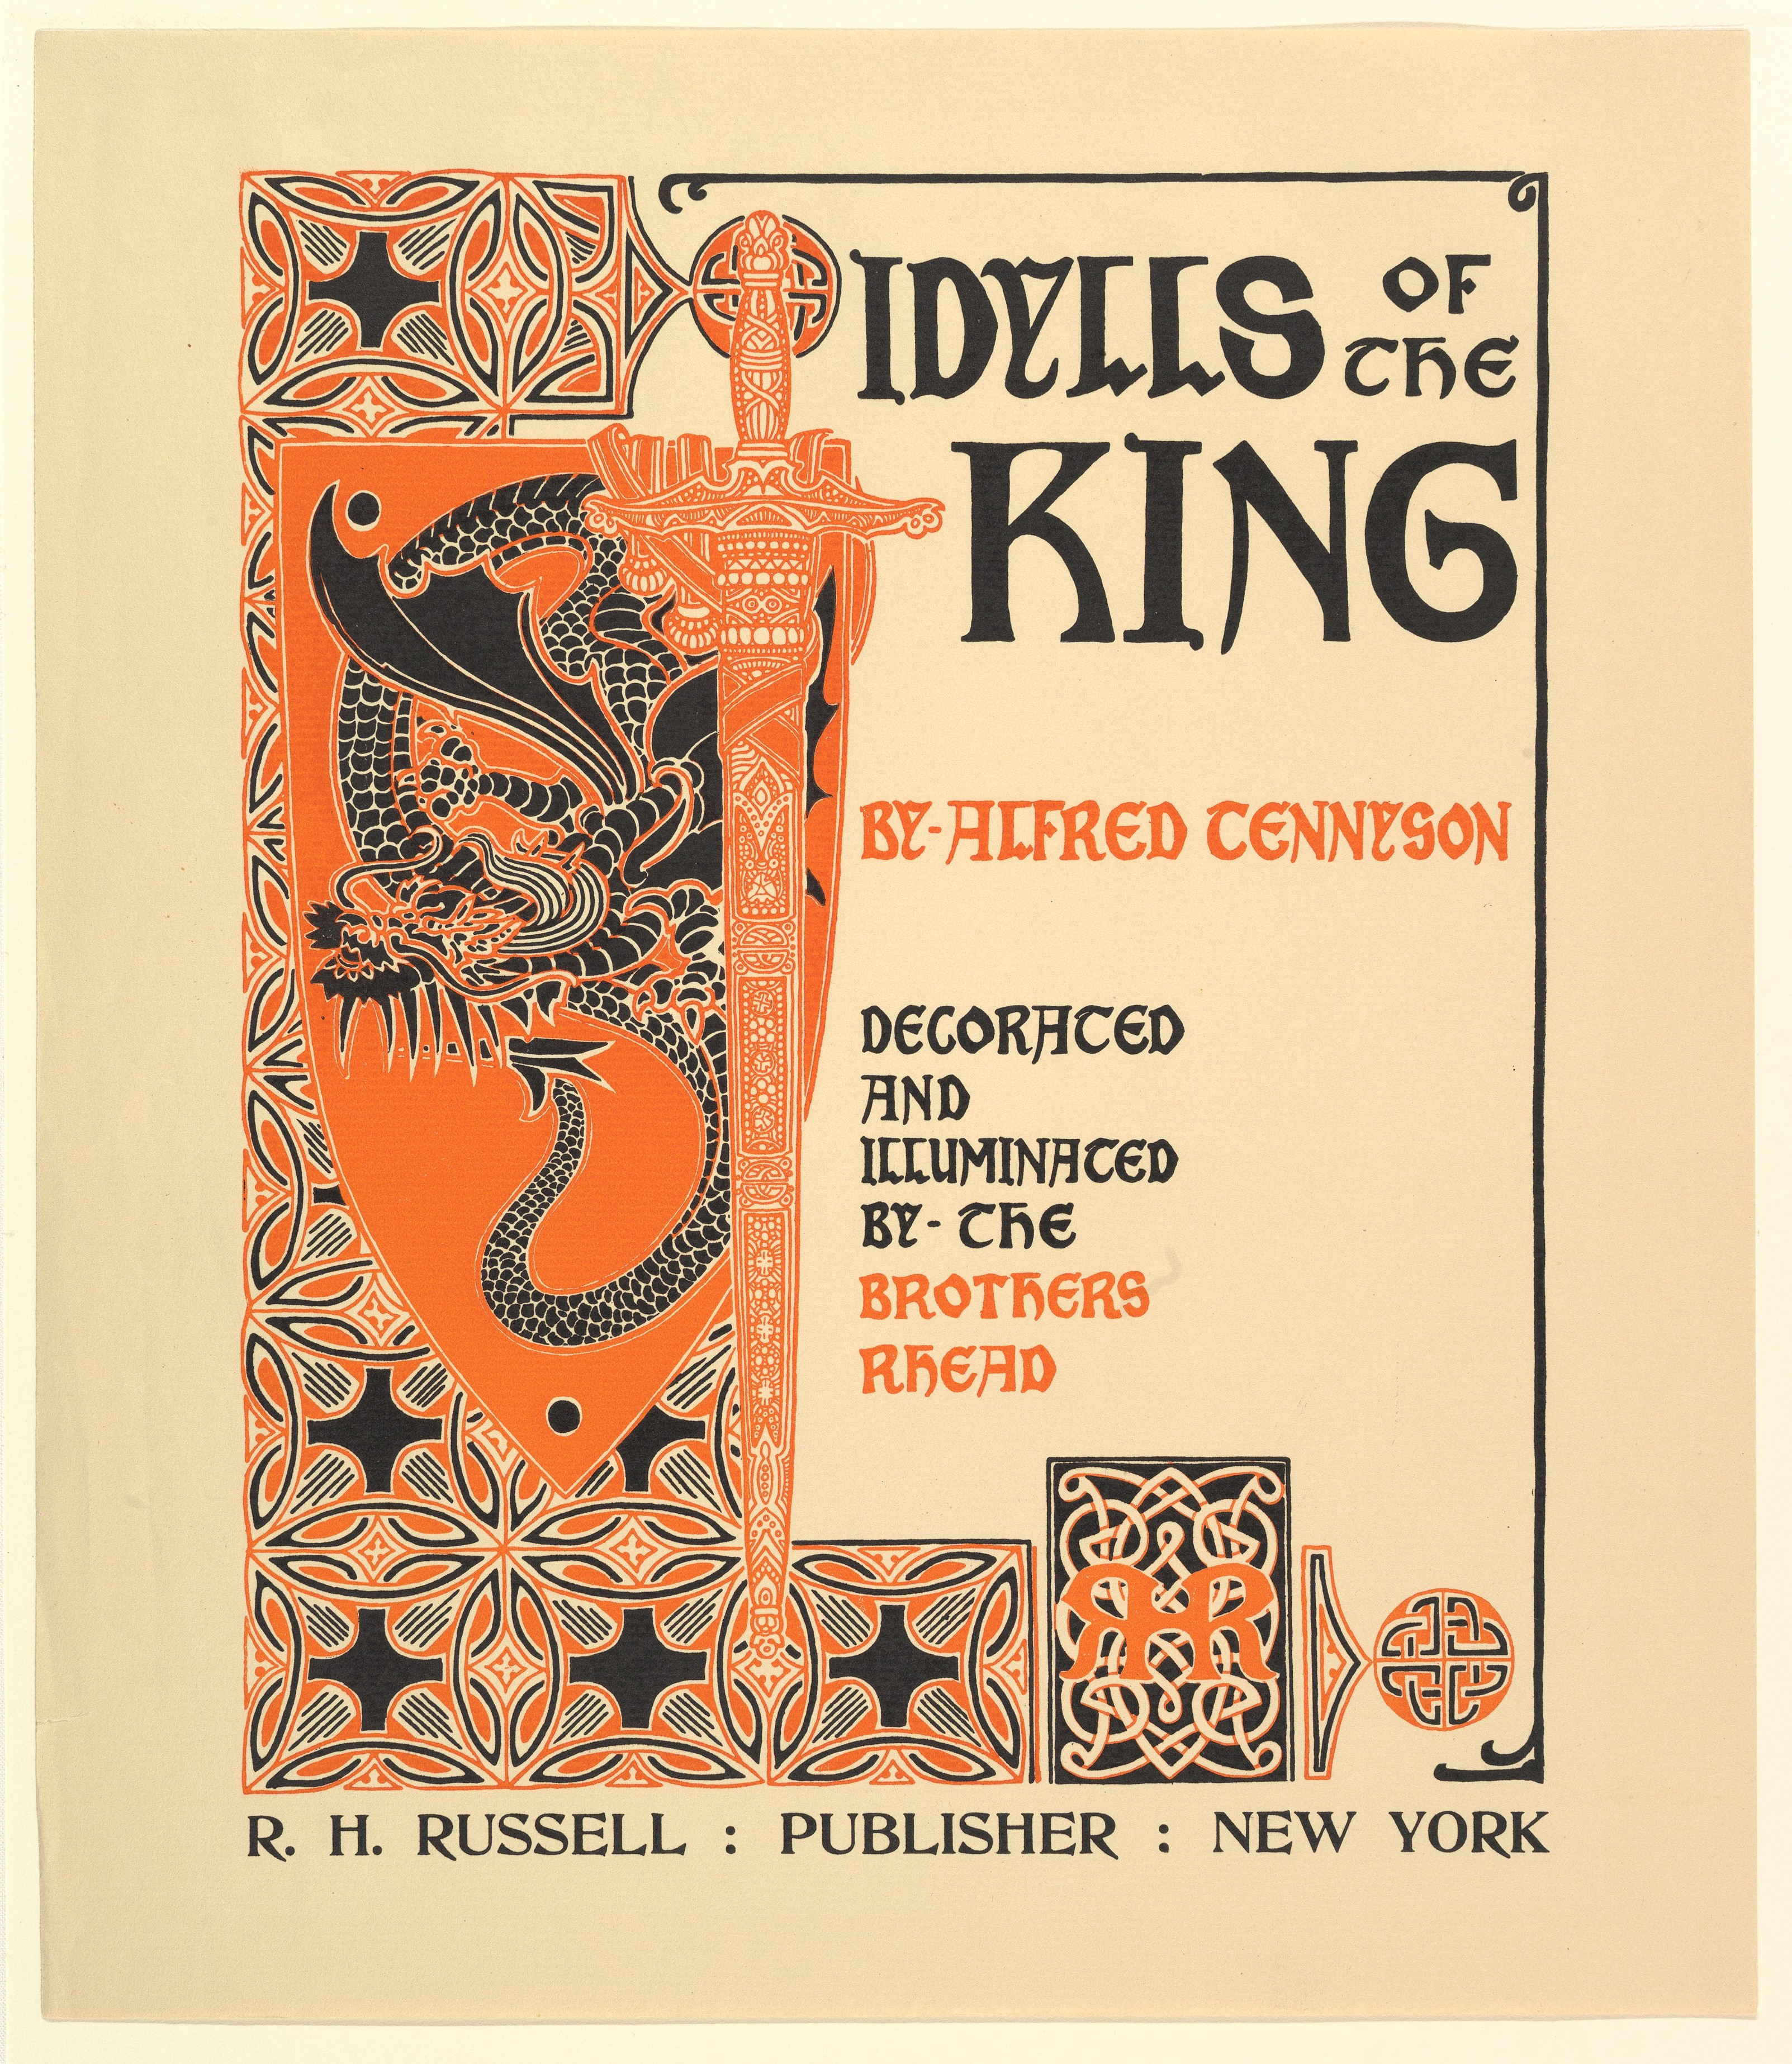 image from 1898 edition of Tennyson's Idylls of the King